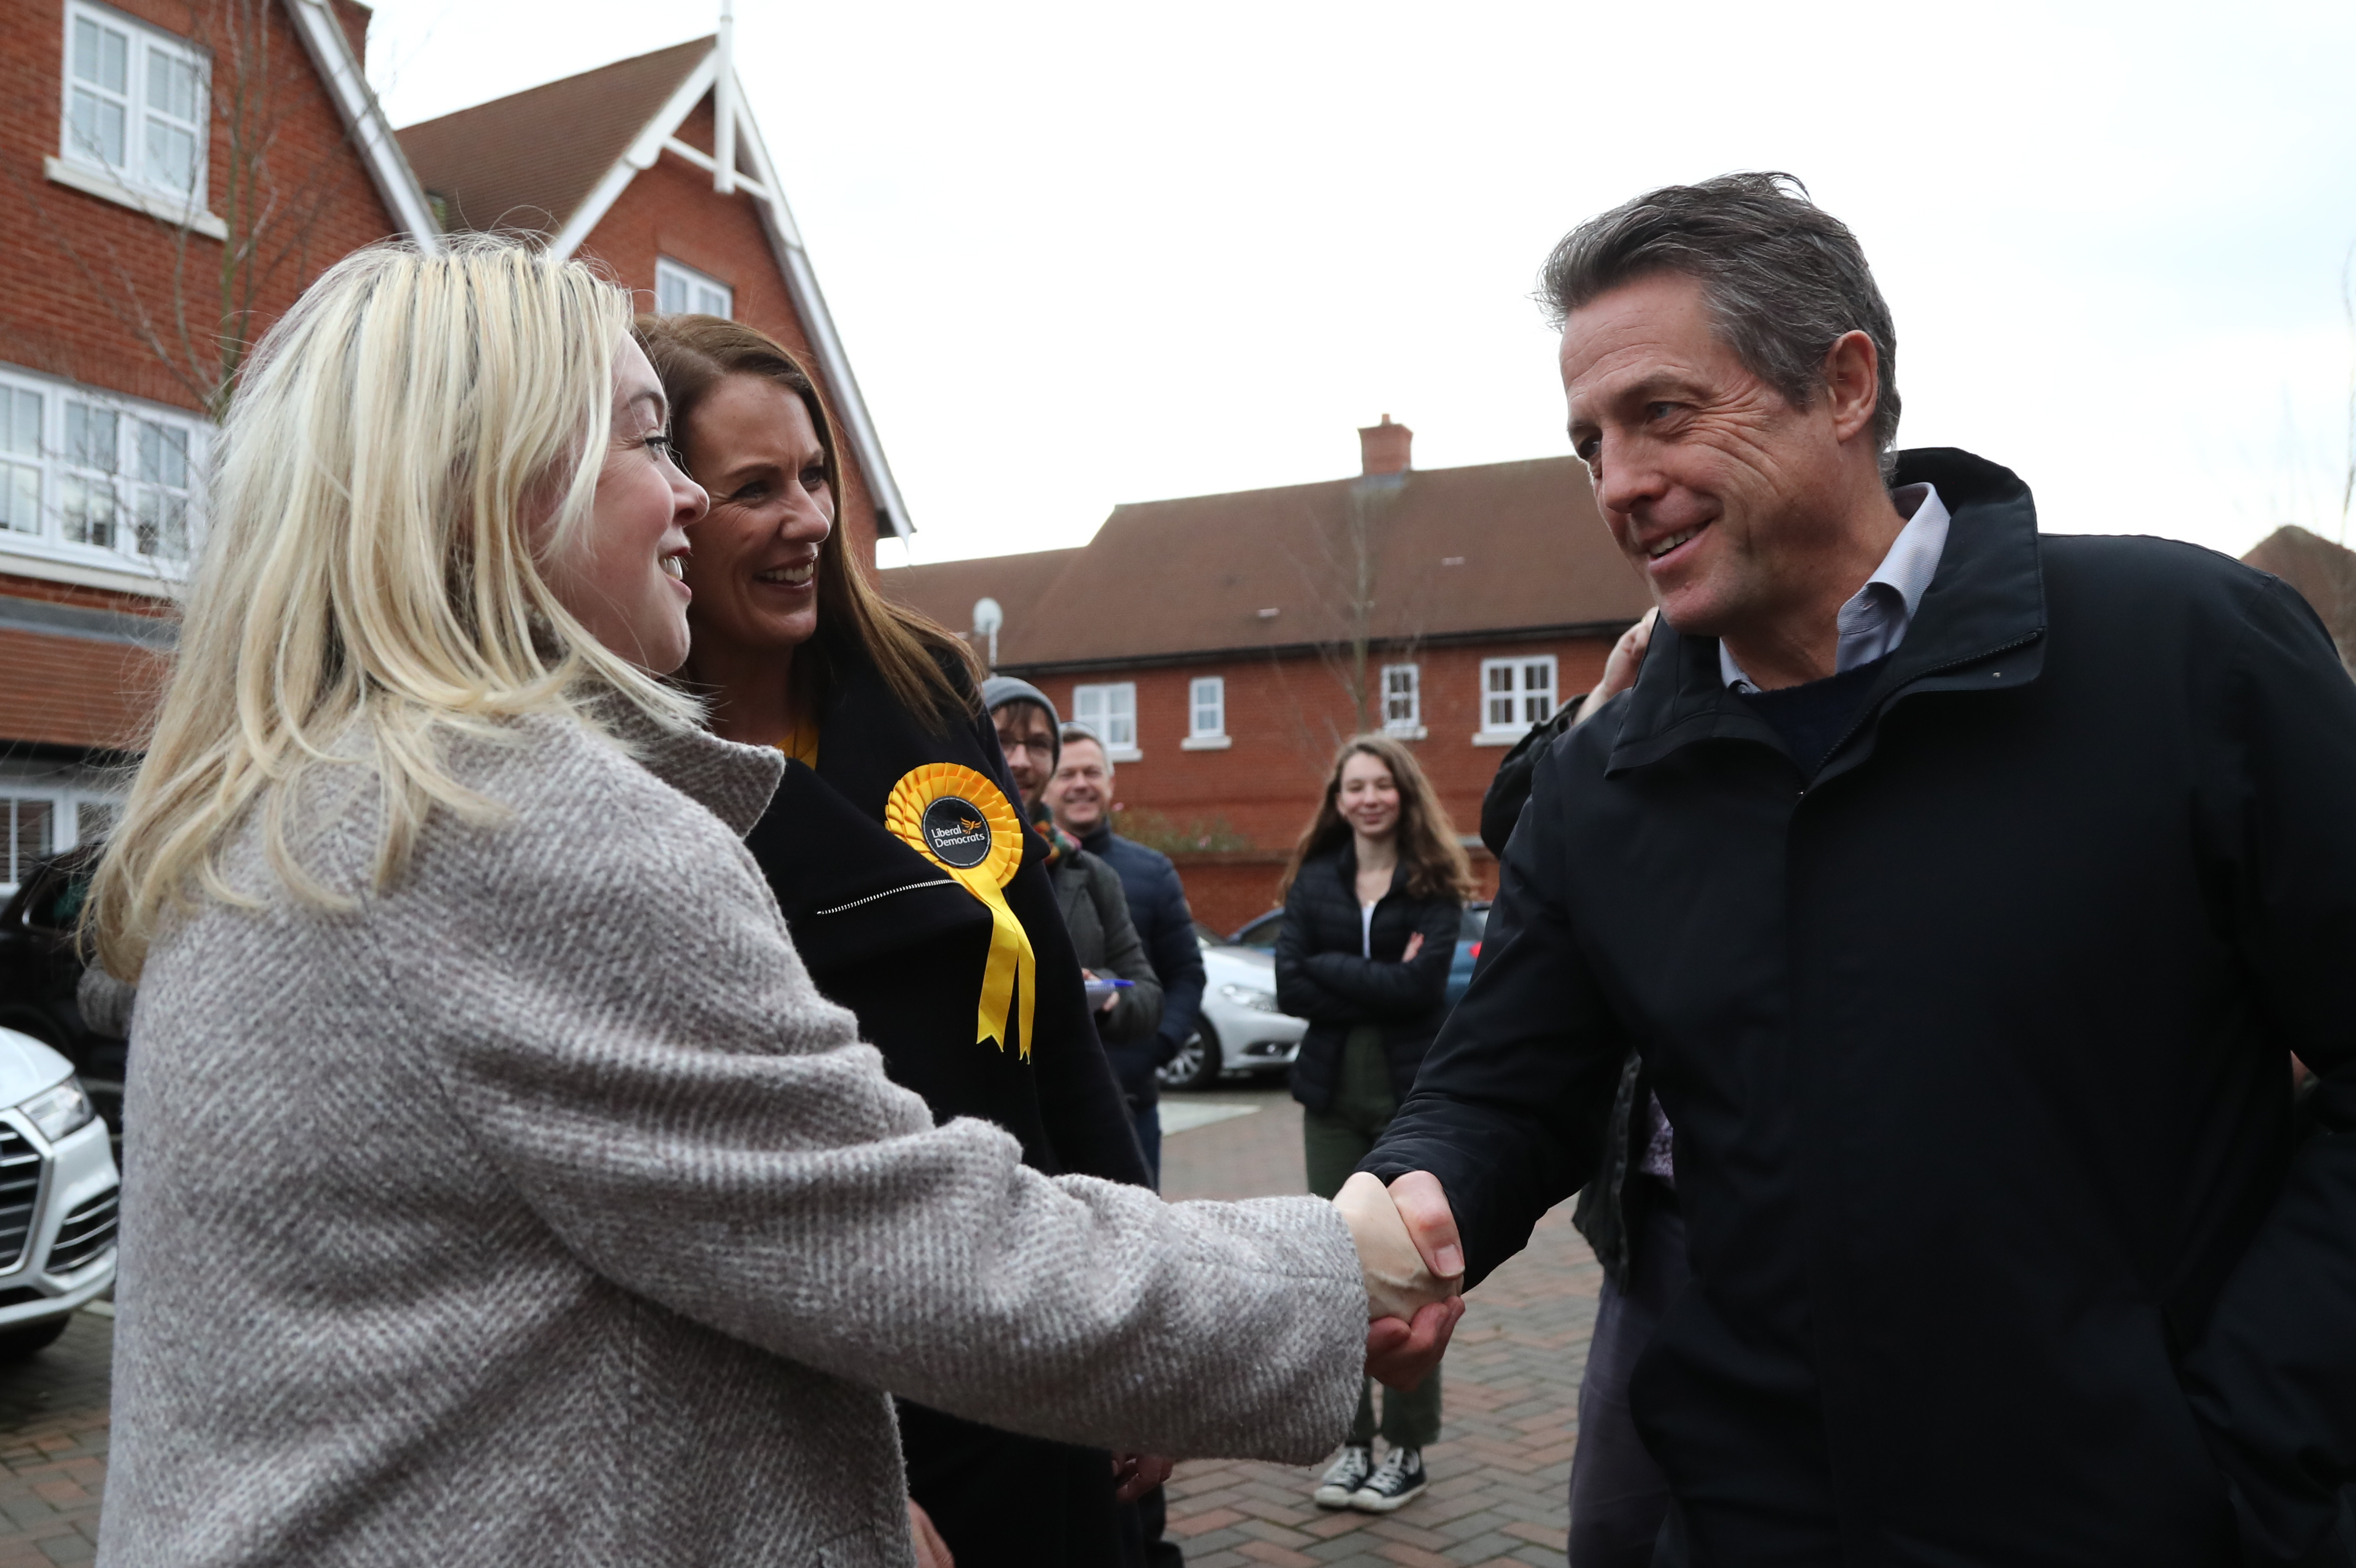 Actor Hugh Grant canvassing in Walton -on-Thames in the Esher & Walton constituency with Liberal Democrat candidate Monica Harding.